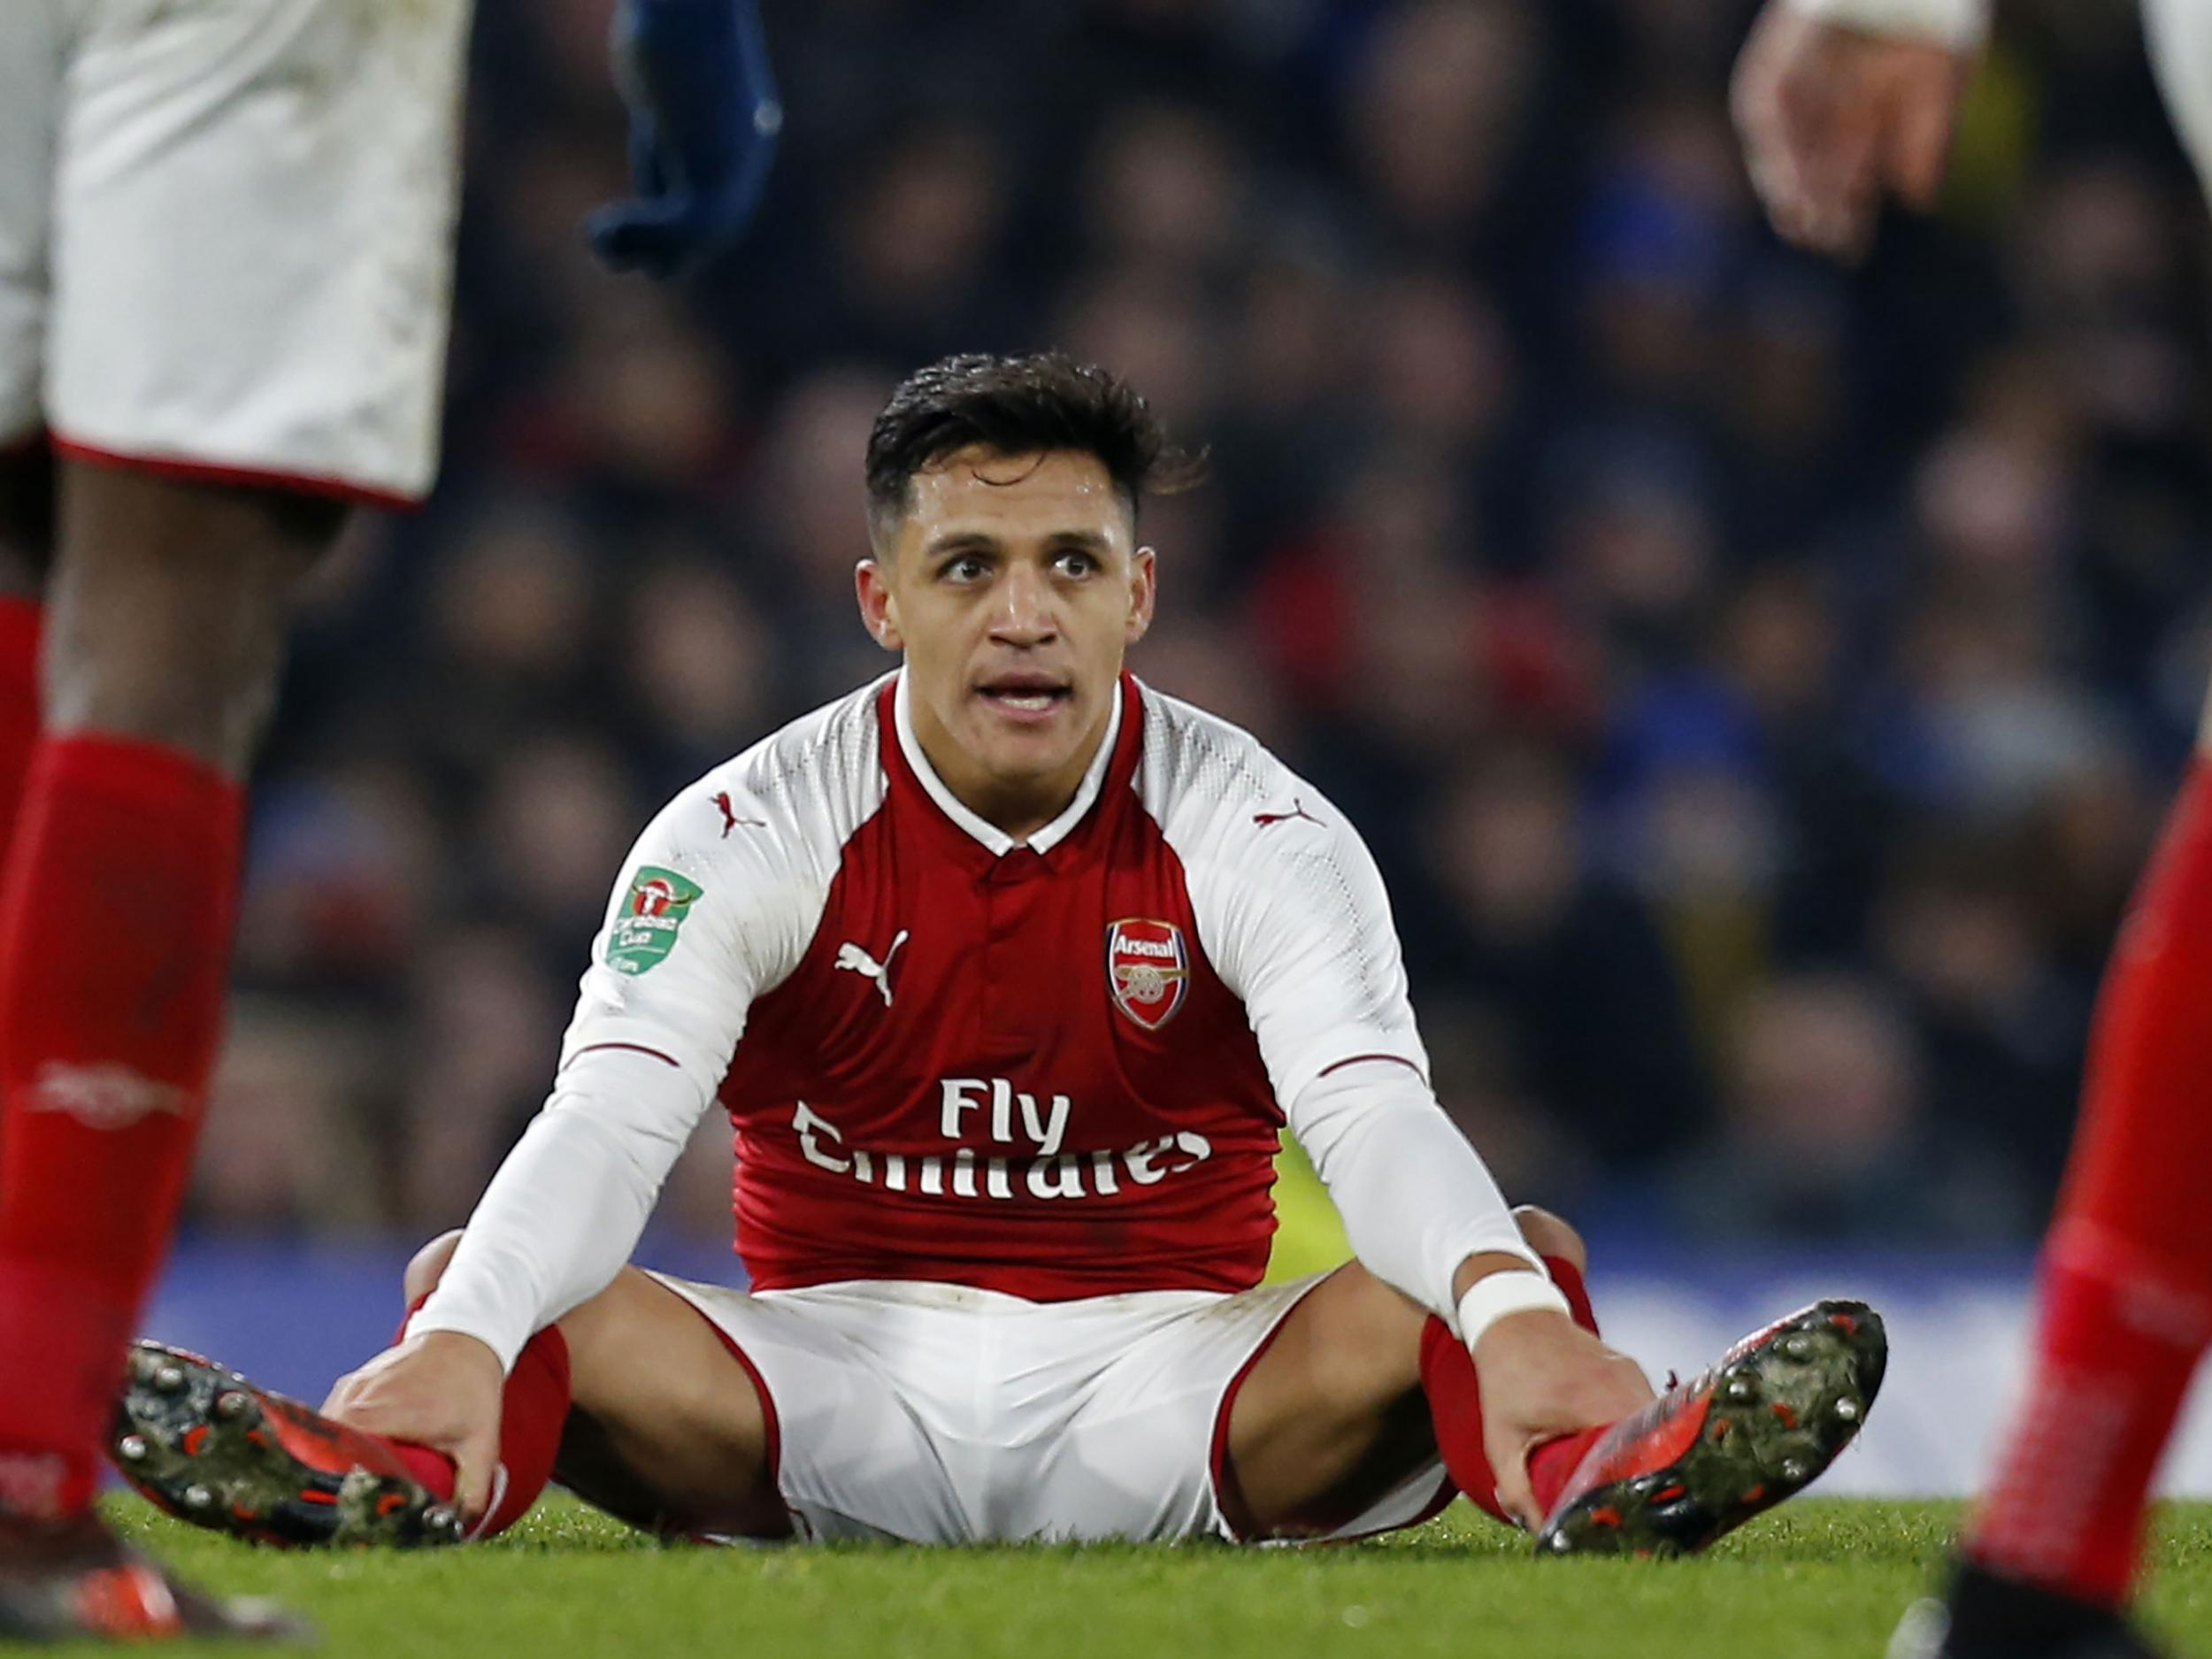 Transfer news, rumours LIVE: Liverpool, Manchester United and Arsenal latest, Alexis Sanchez updates and done deals